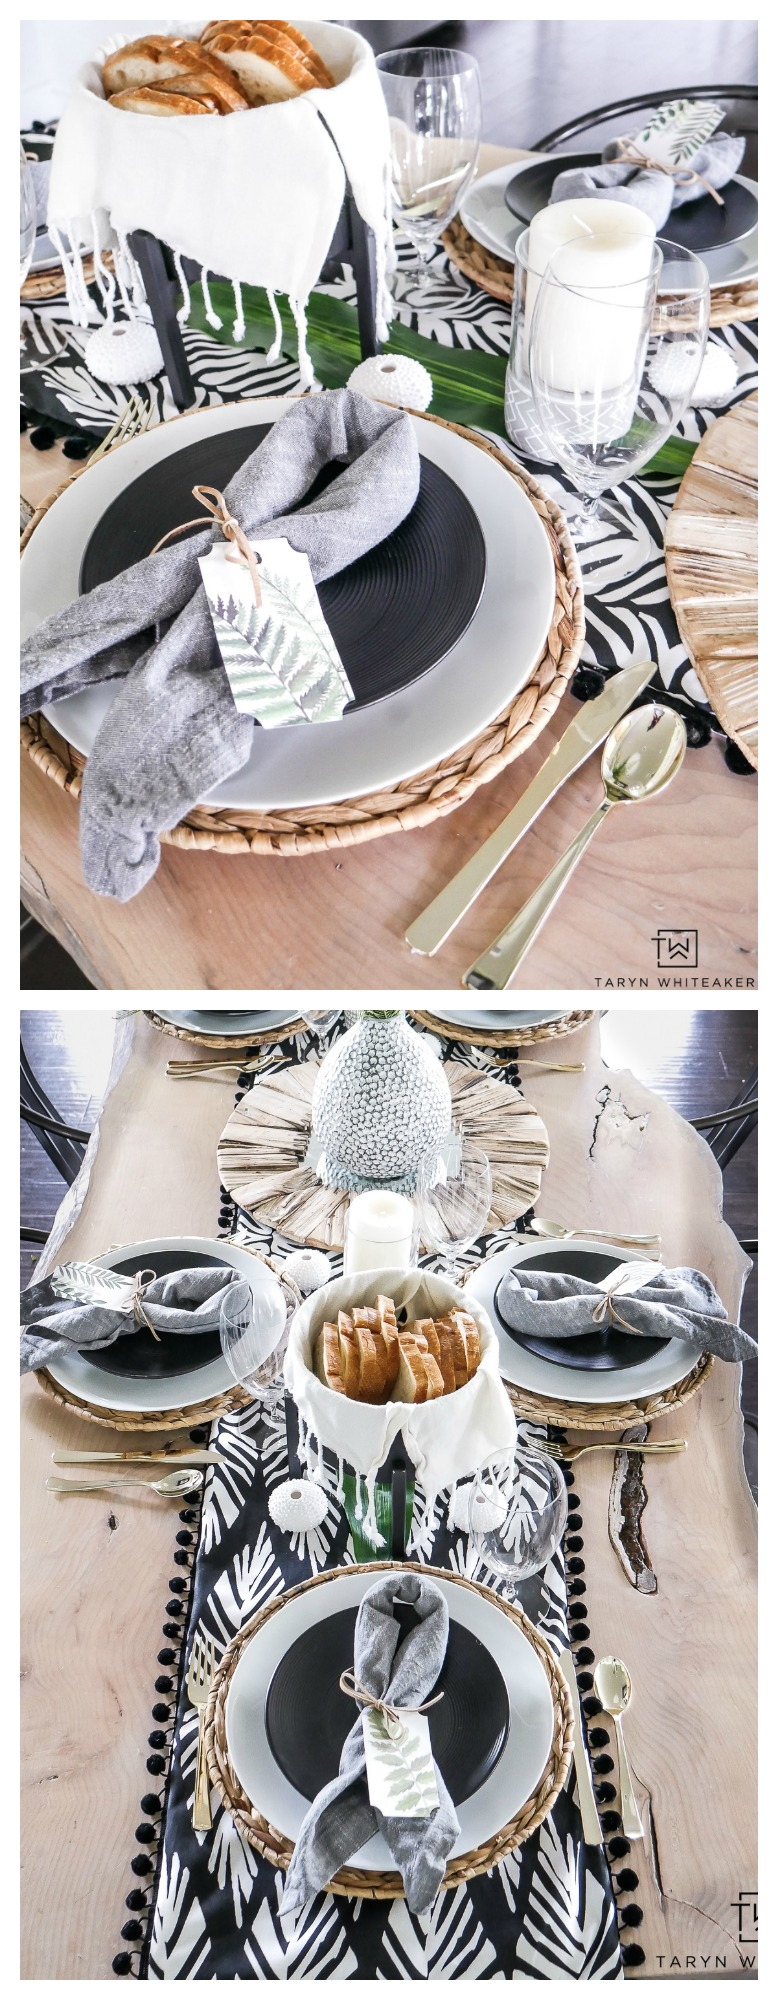 Impress your guests with this tropical dinner party decor at your next summer dinner party. This black and white tropical decor is perfect those who love chic modern decor but still want to have fun!